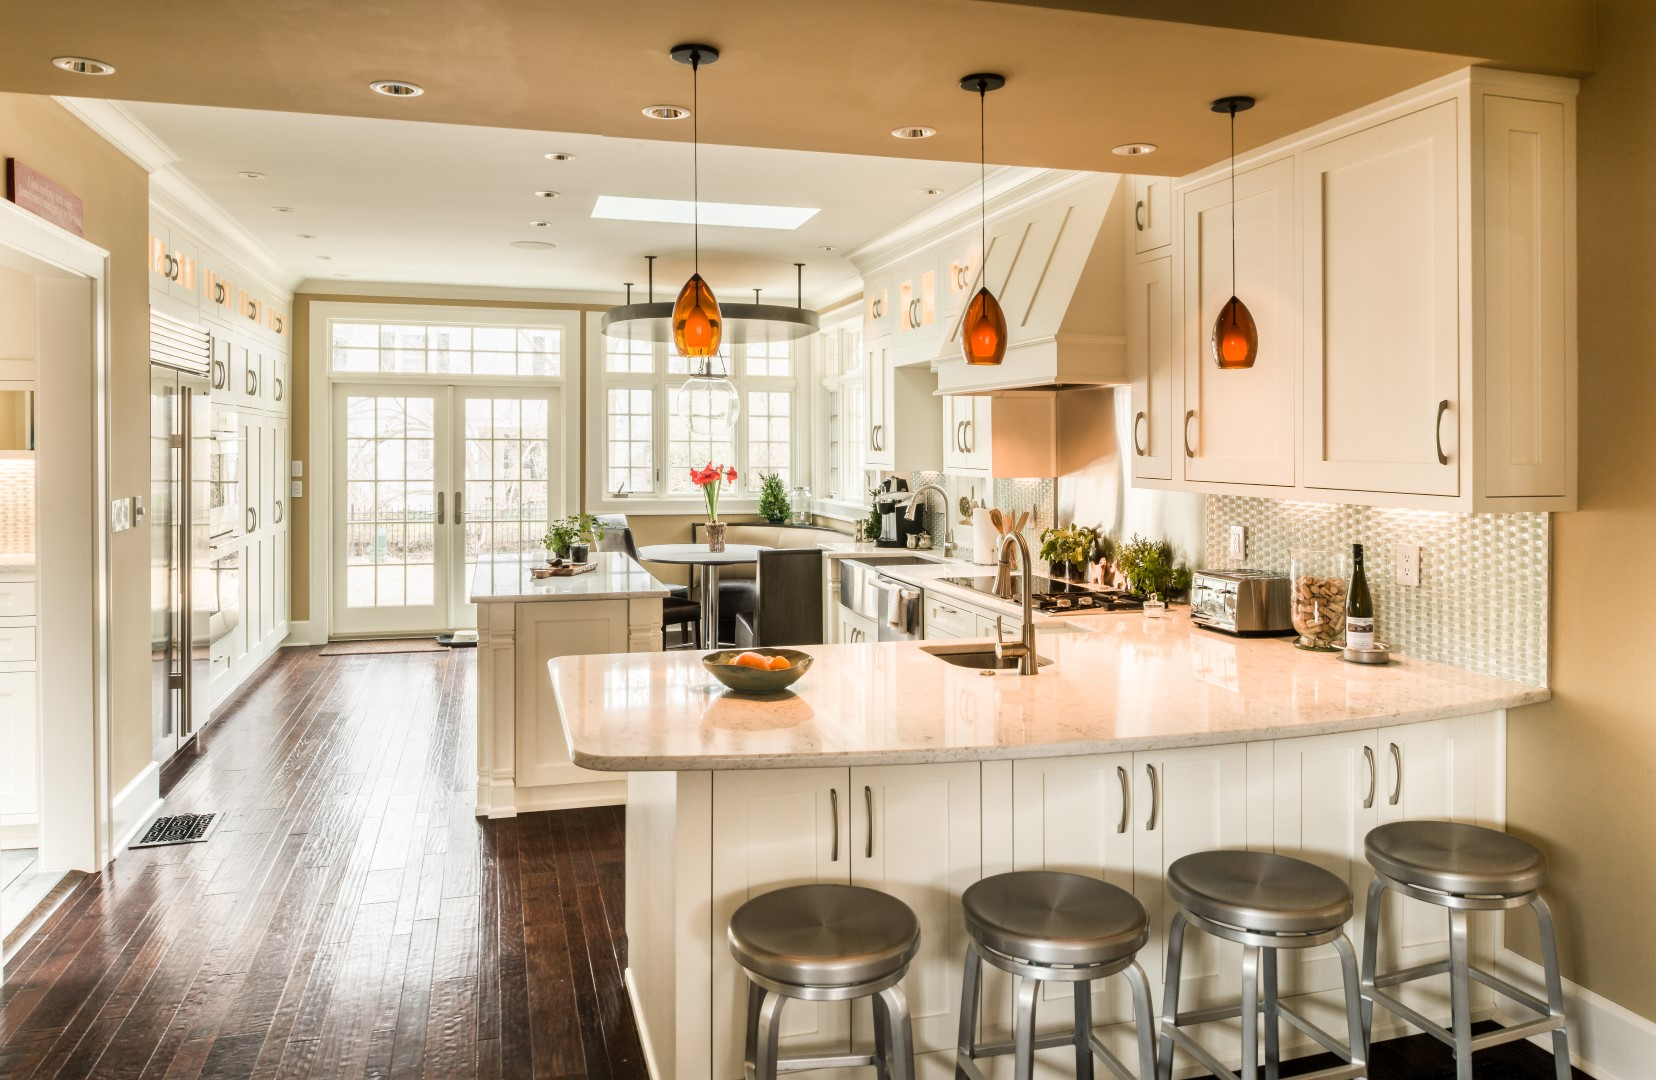 Open Floor Plan Tops List For 2018 Home Remodeling Trends